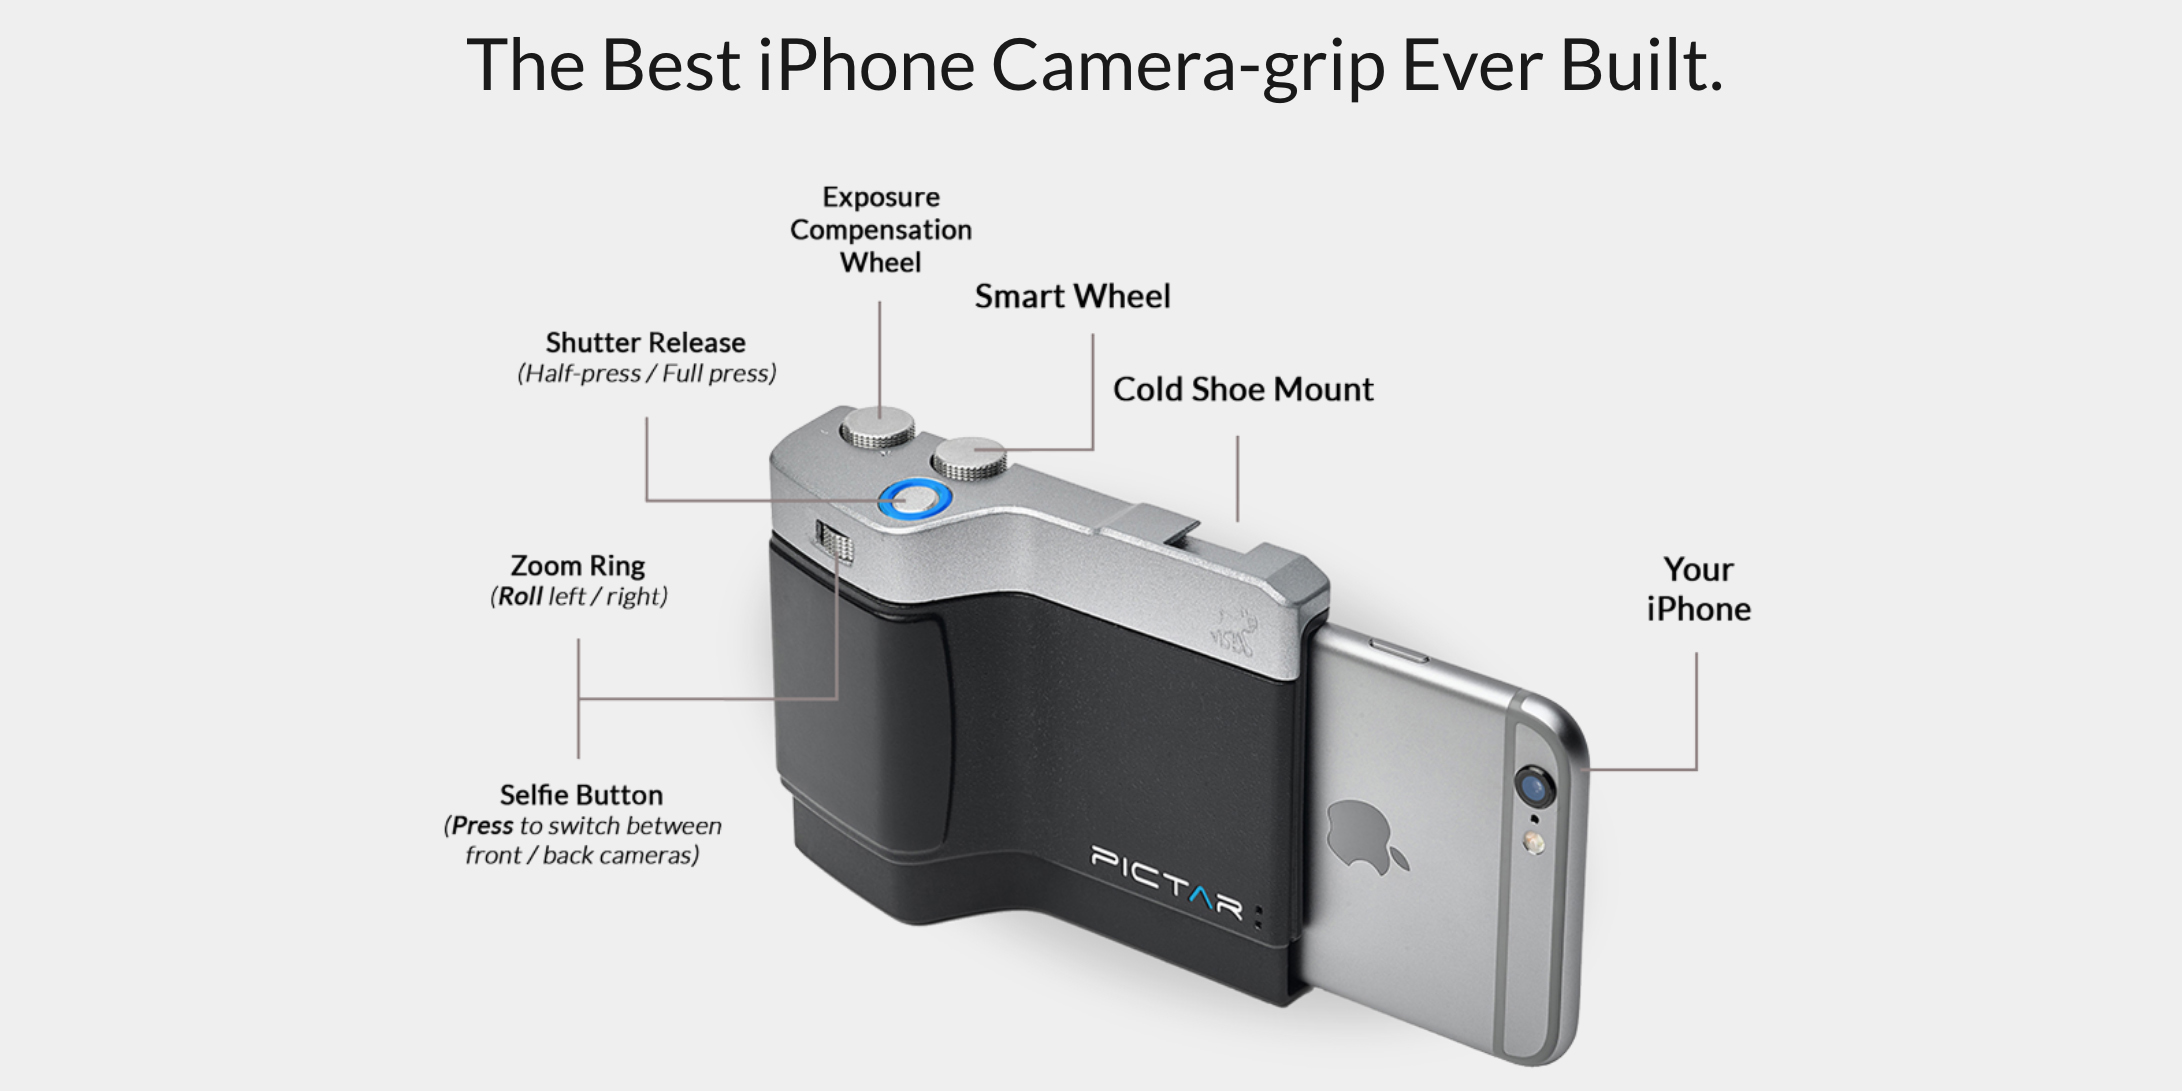 Outfit your iPhone with DSLR controls: Miggo Pictar Camera Grip $65 (Cert. Refurb)